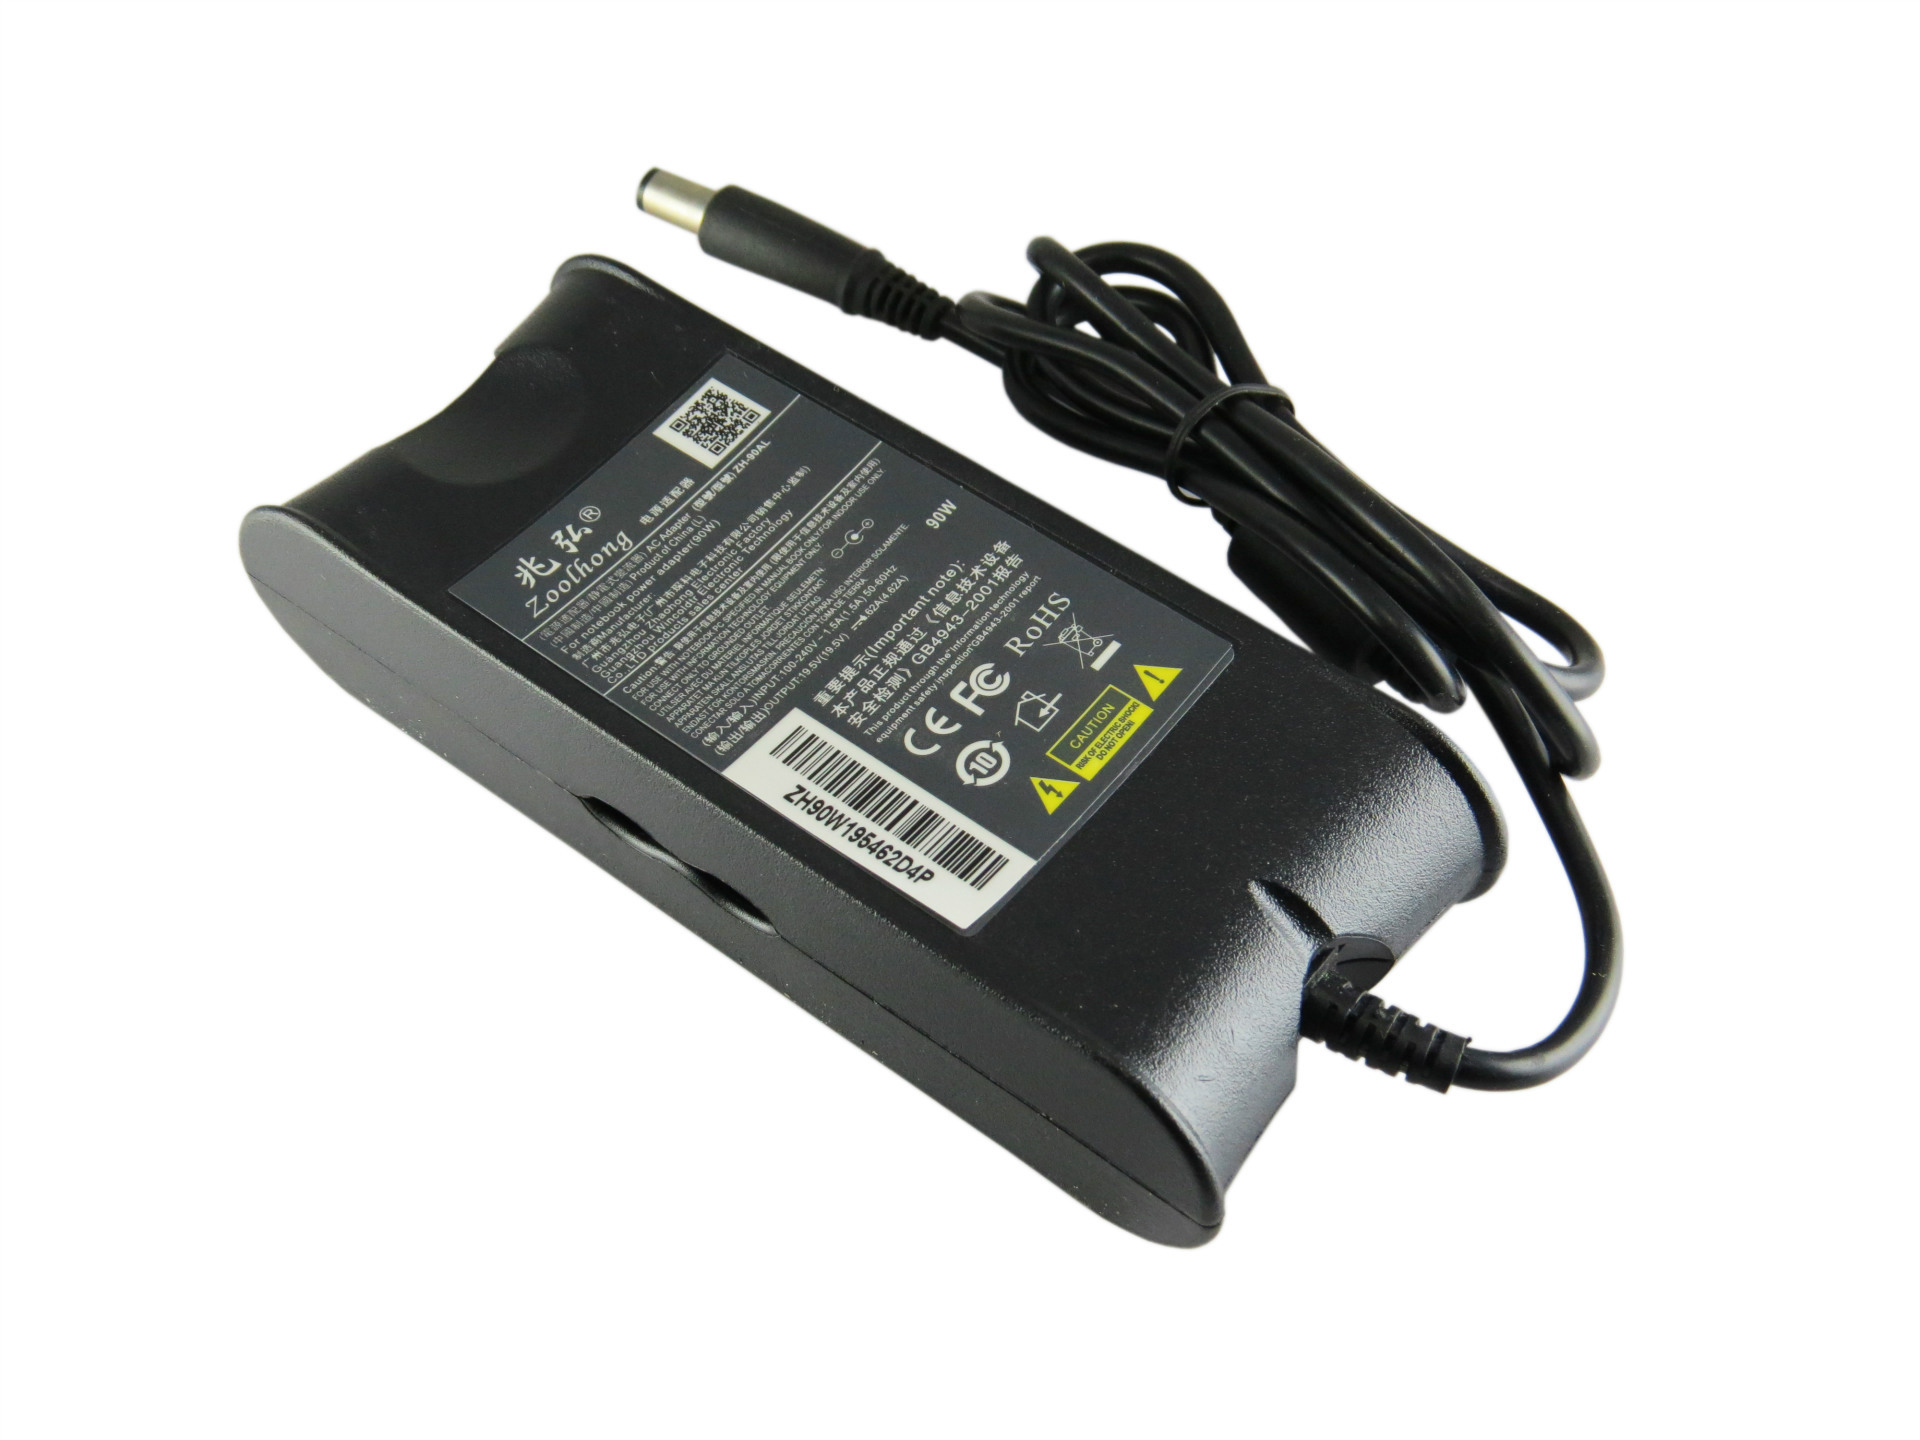 19.5V 4.62A 90W Ac Power Adapter Charger Untuk Laptop Dell Ad-90195D Pa-1900-01D3 Df266 M20 M60 M65 M70 7.4Mm * 5.0Mm